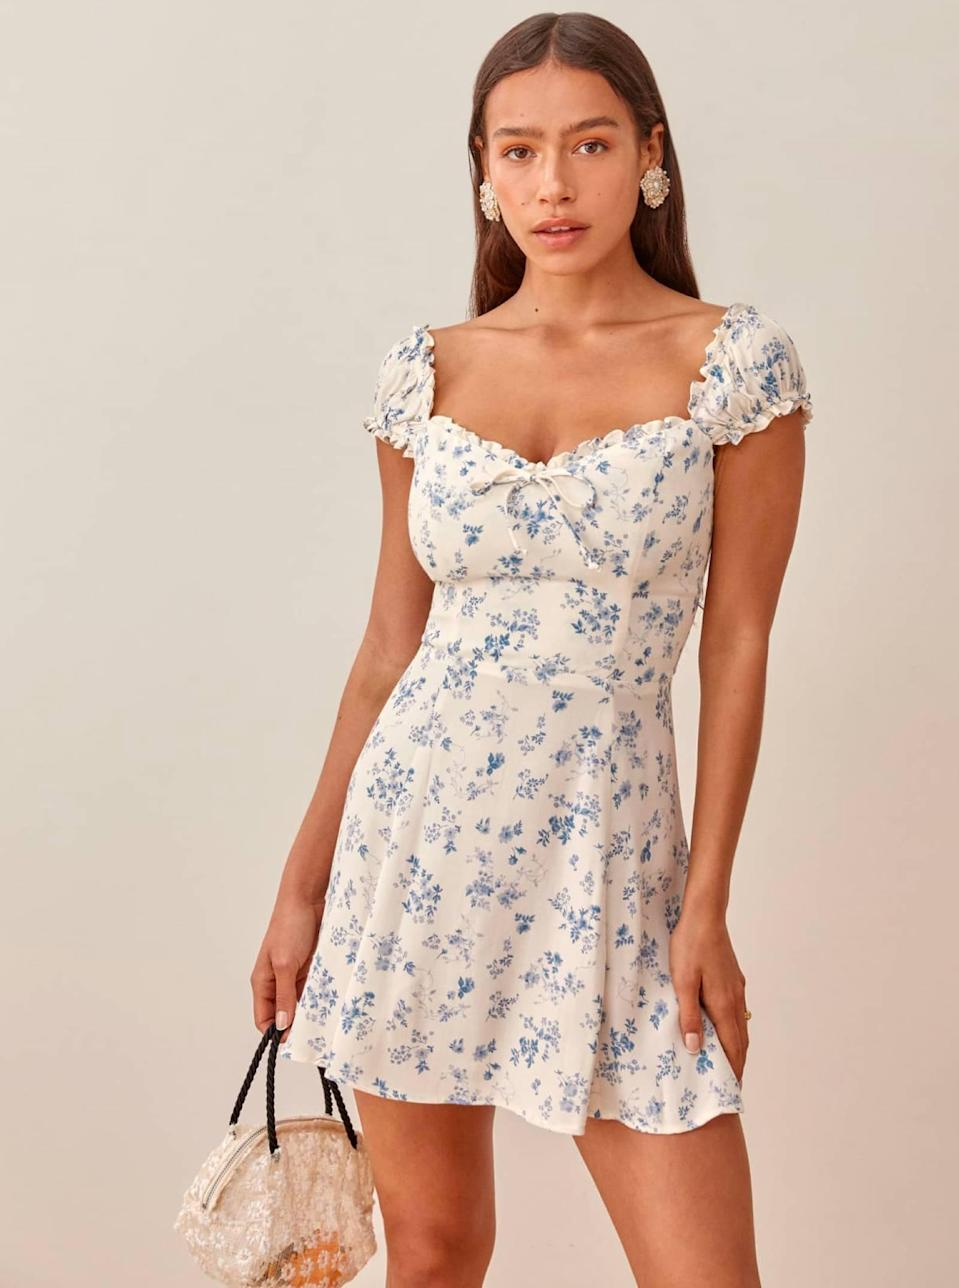 """Is any dress lineup complete without Reformation? The planet-conscious brand nails date-ready styles every single <em>time</em>. $218, Reformation. <a href=""""https://www.thereformation.com/products/pacey-dress?"""" rel=""""nofollow noopener"""" target=""""_blank"""" data-ylk=""""slk:Get it now!"""" class=""""link rapid-noclick-resp"""">Get it now!</a>"""